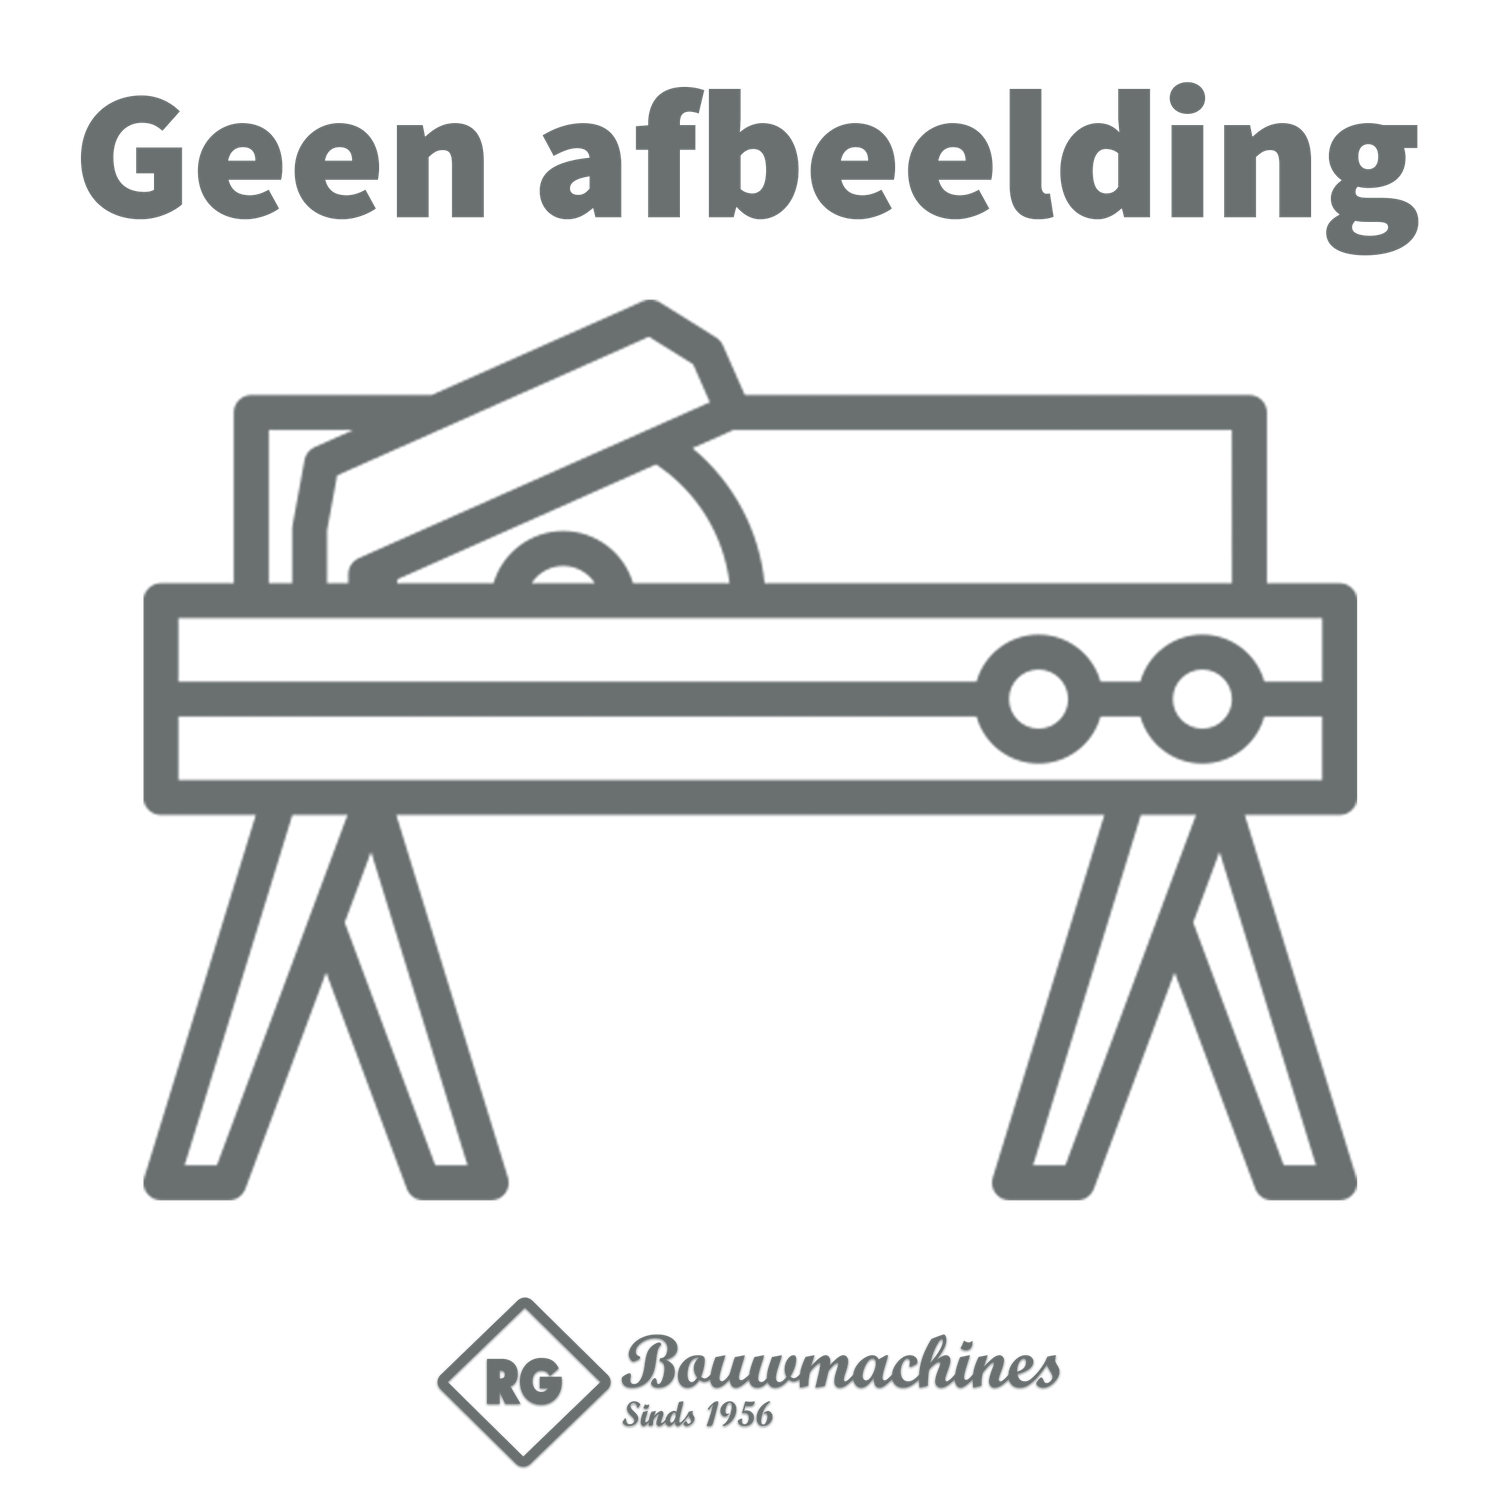 GEO FENNEL 1800 WATT MIXER